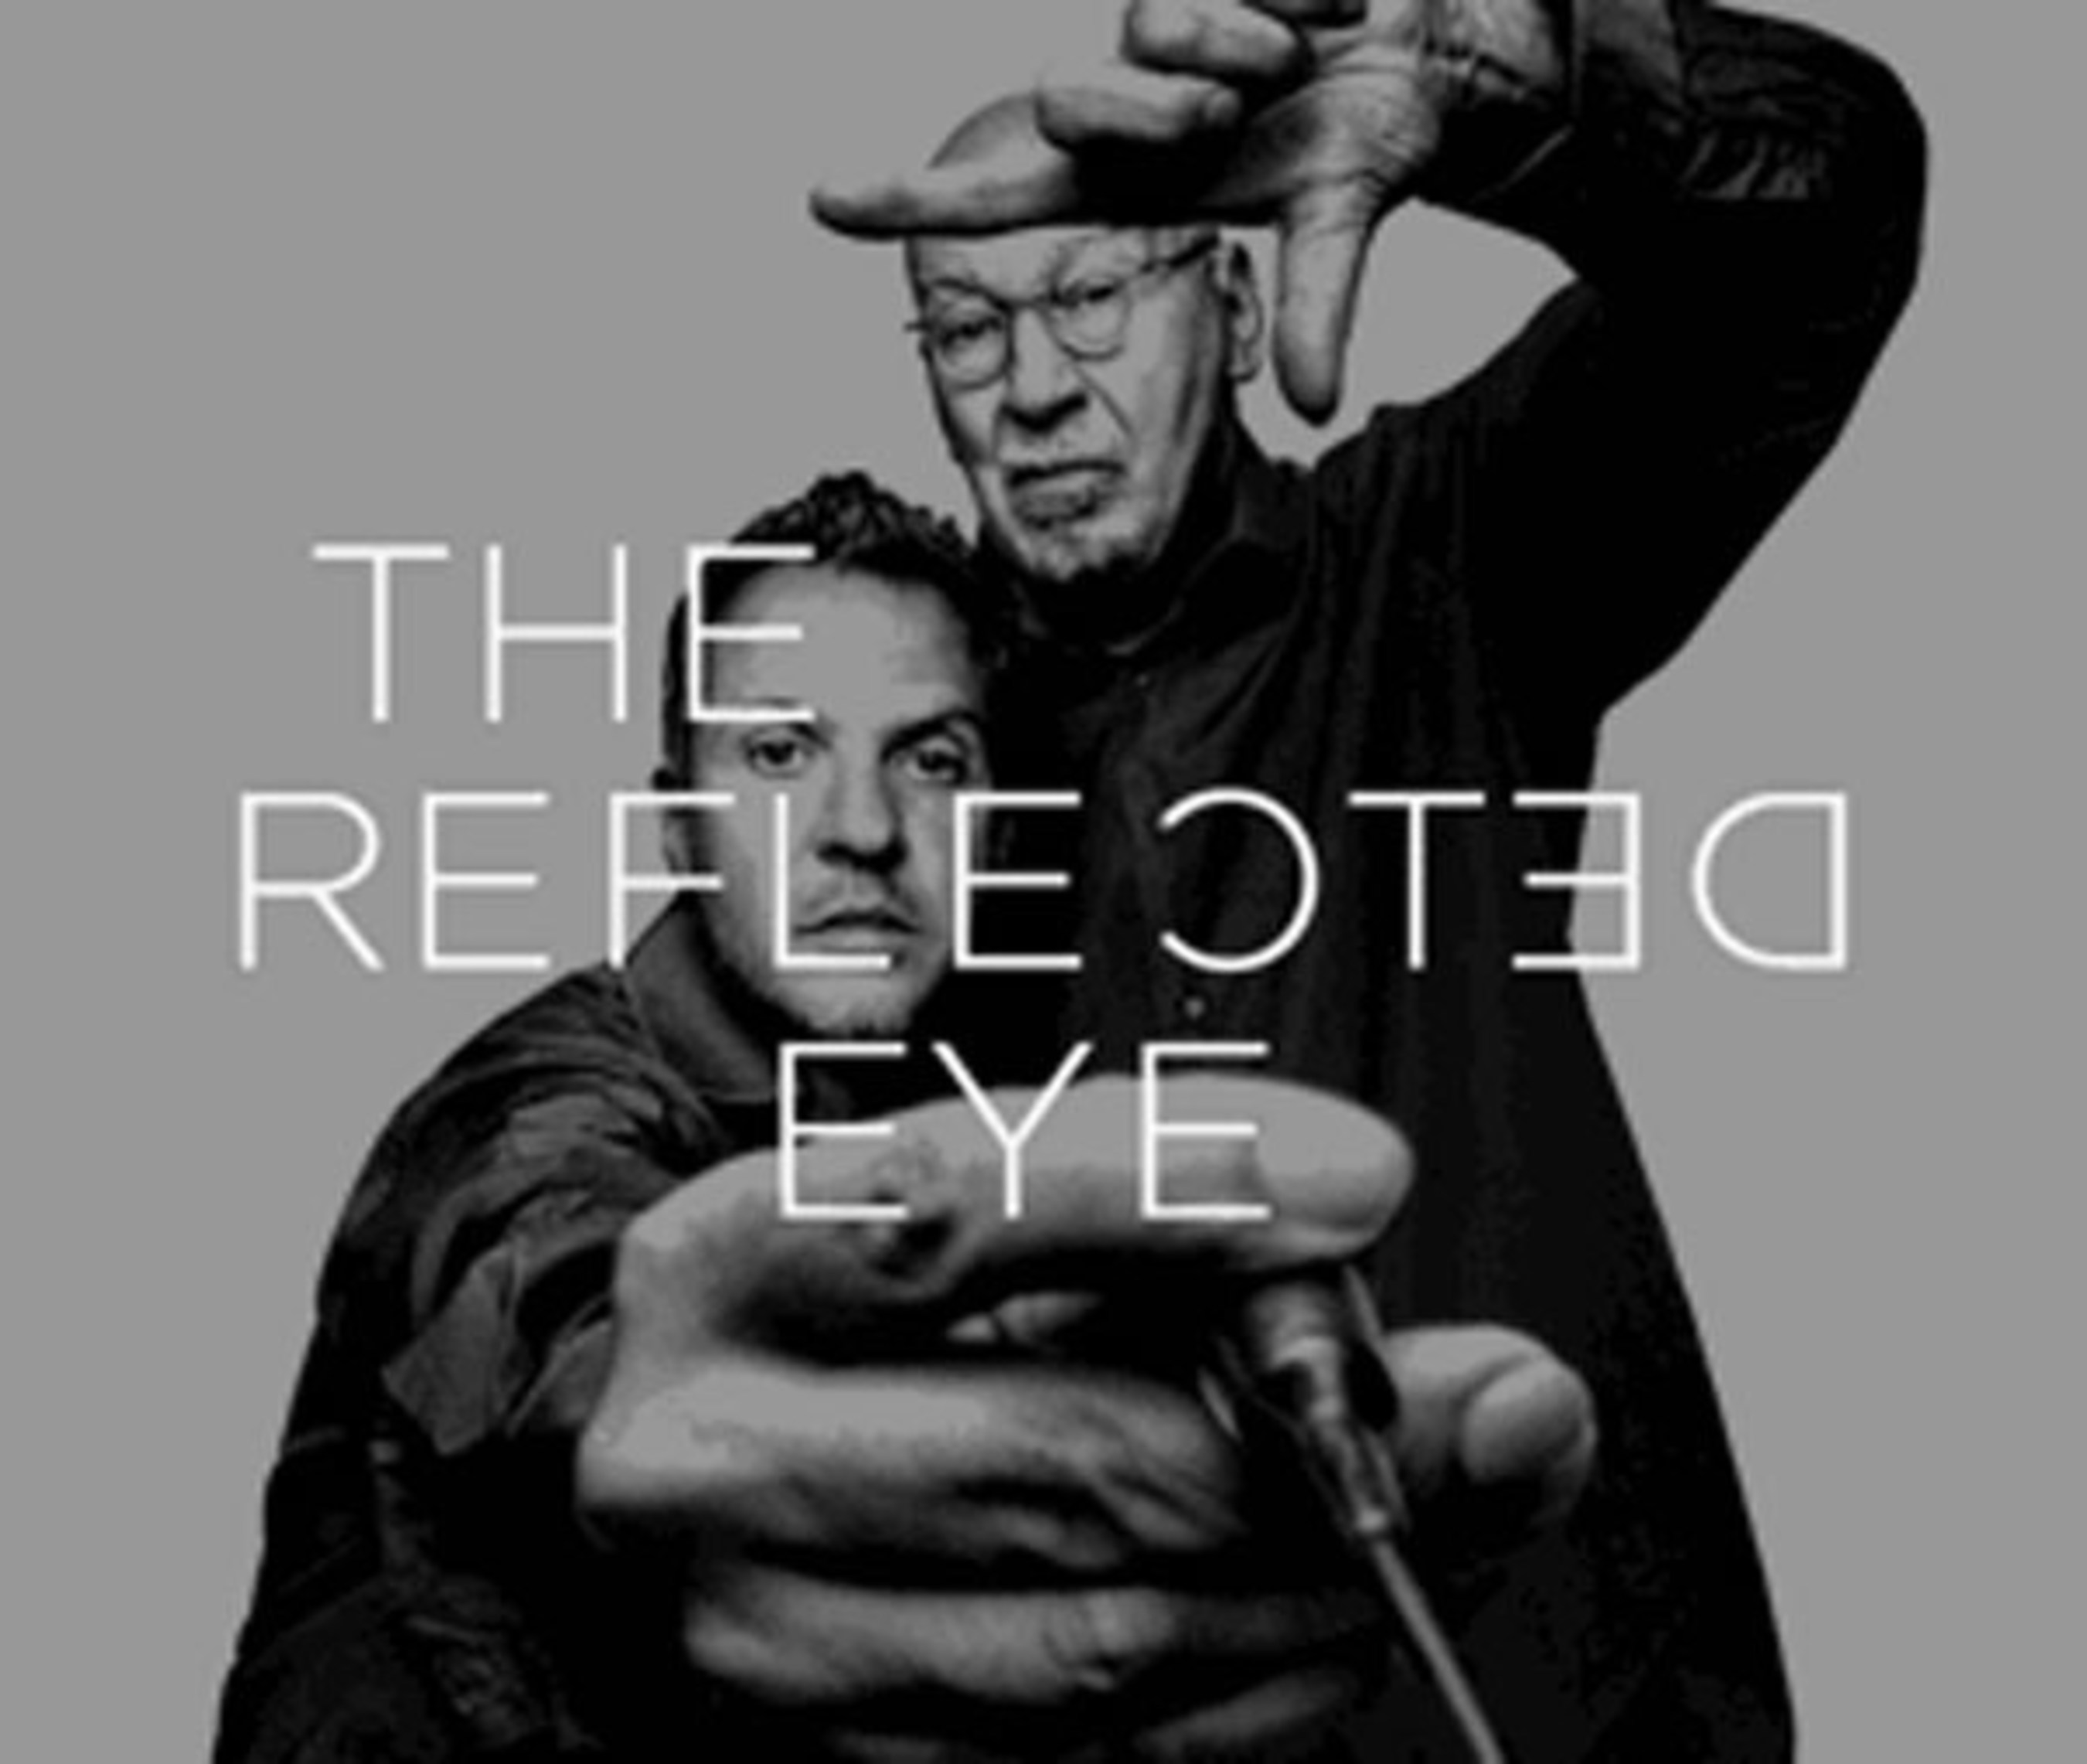 The Reflected Eye photography exhibit opens in SoHo, New York